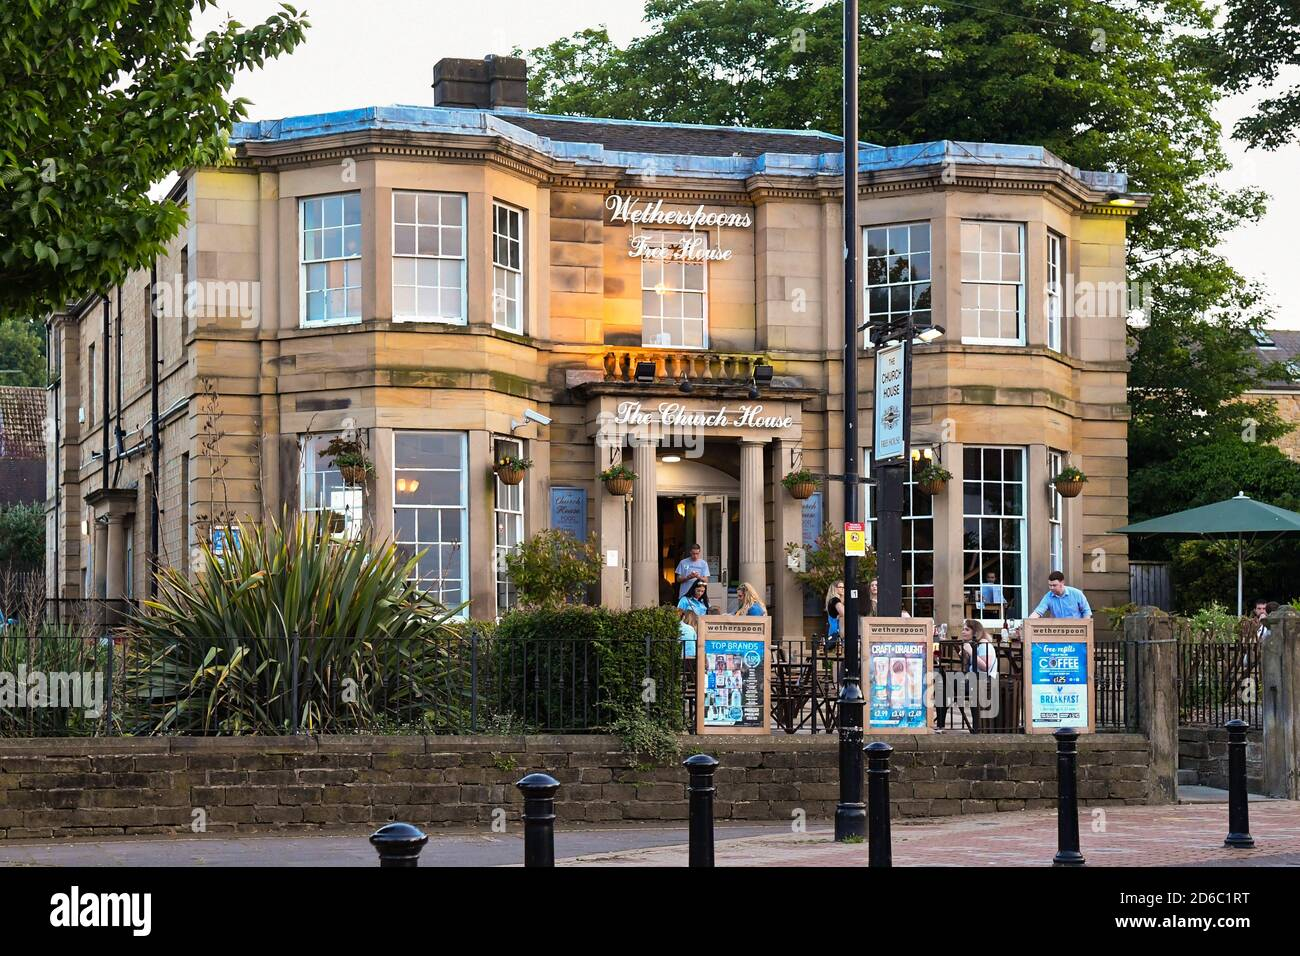 Wetherspoons pub The Church House, Wath upon Dearne, Rotherham, South Yorkshire, England, UK Stock Photo